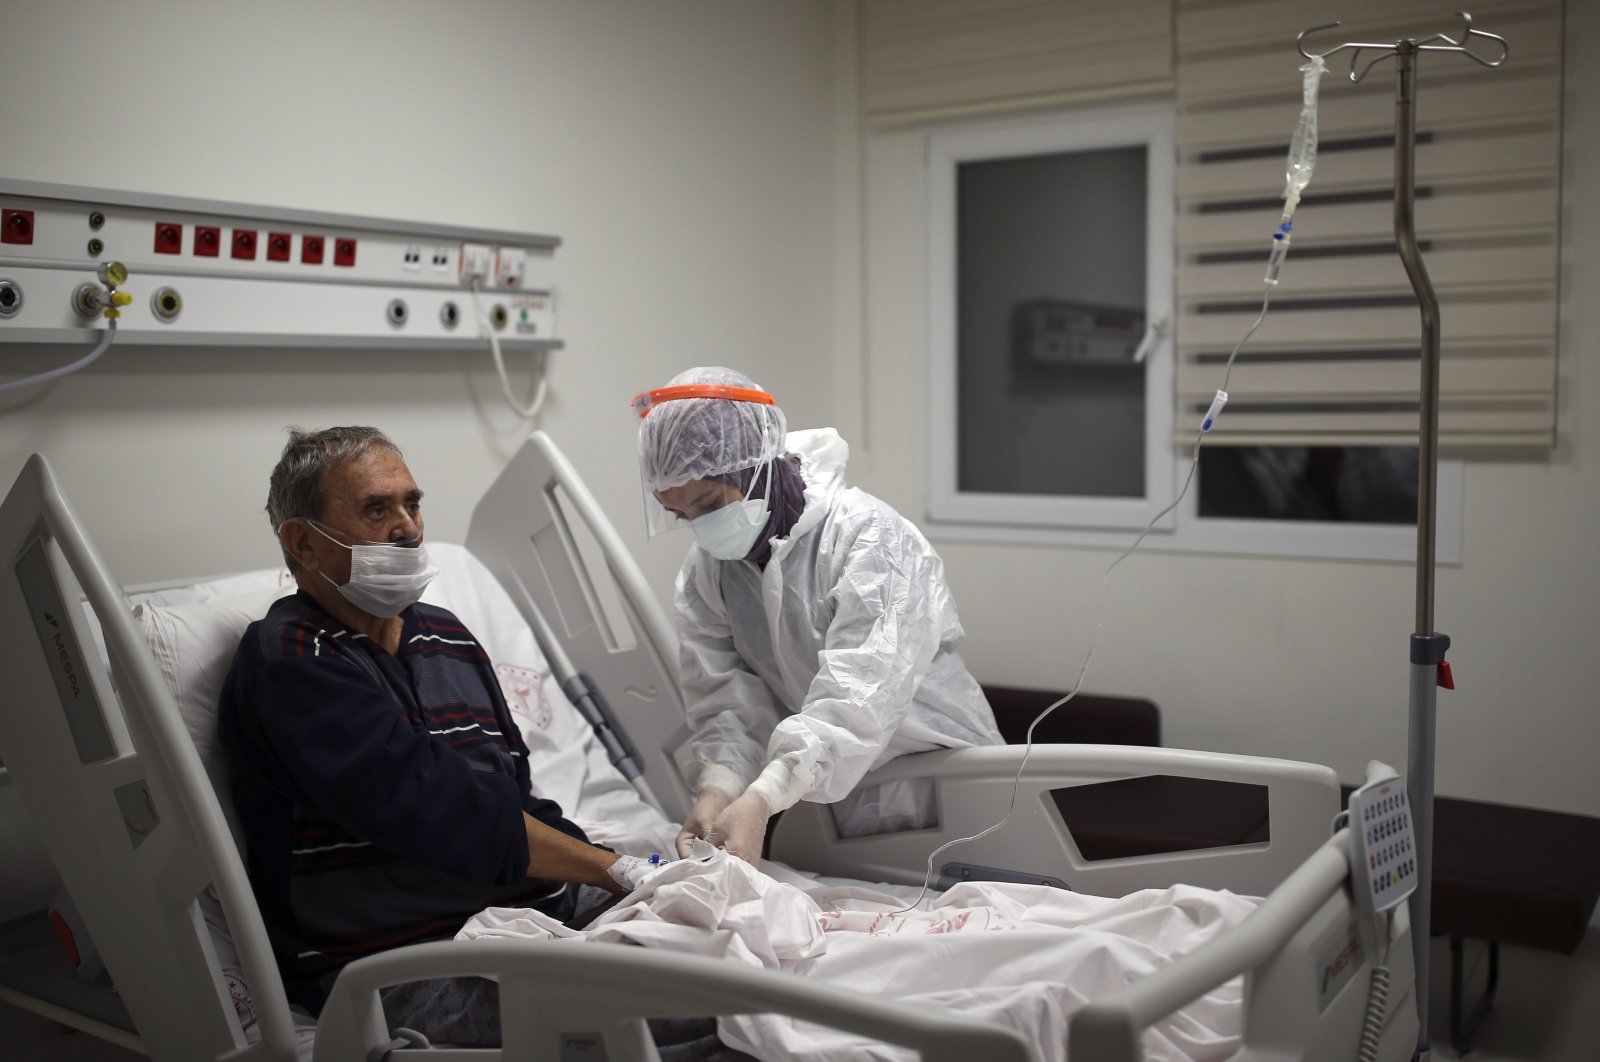 Nurse Mevlüde Altan tends to İsmail Demir infected with COVID-19, at the intensive care unit of the Prof. Dr. Feriha Oz Emergency Hospital, in Istanbul, Turkey, Dec. 19, 2020. (AP PHOTO)